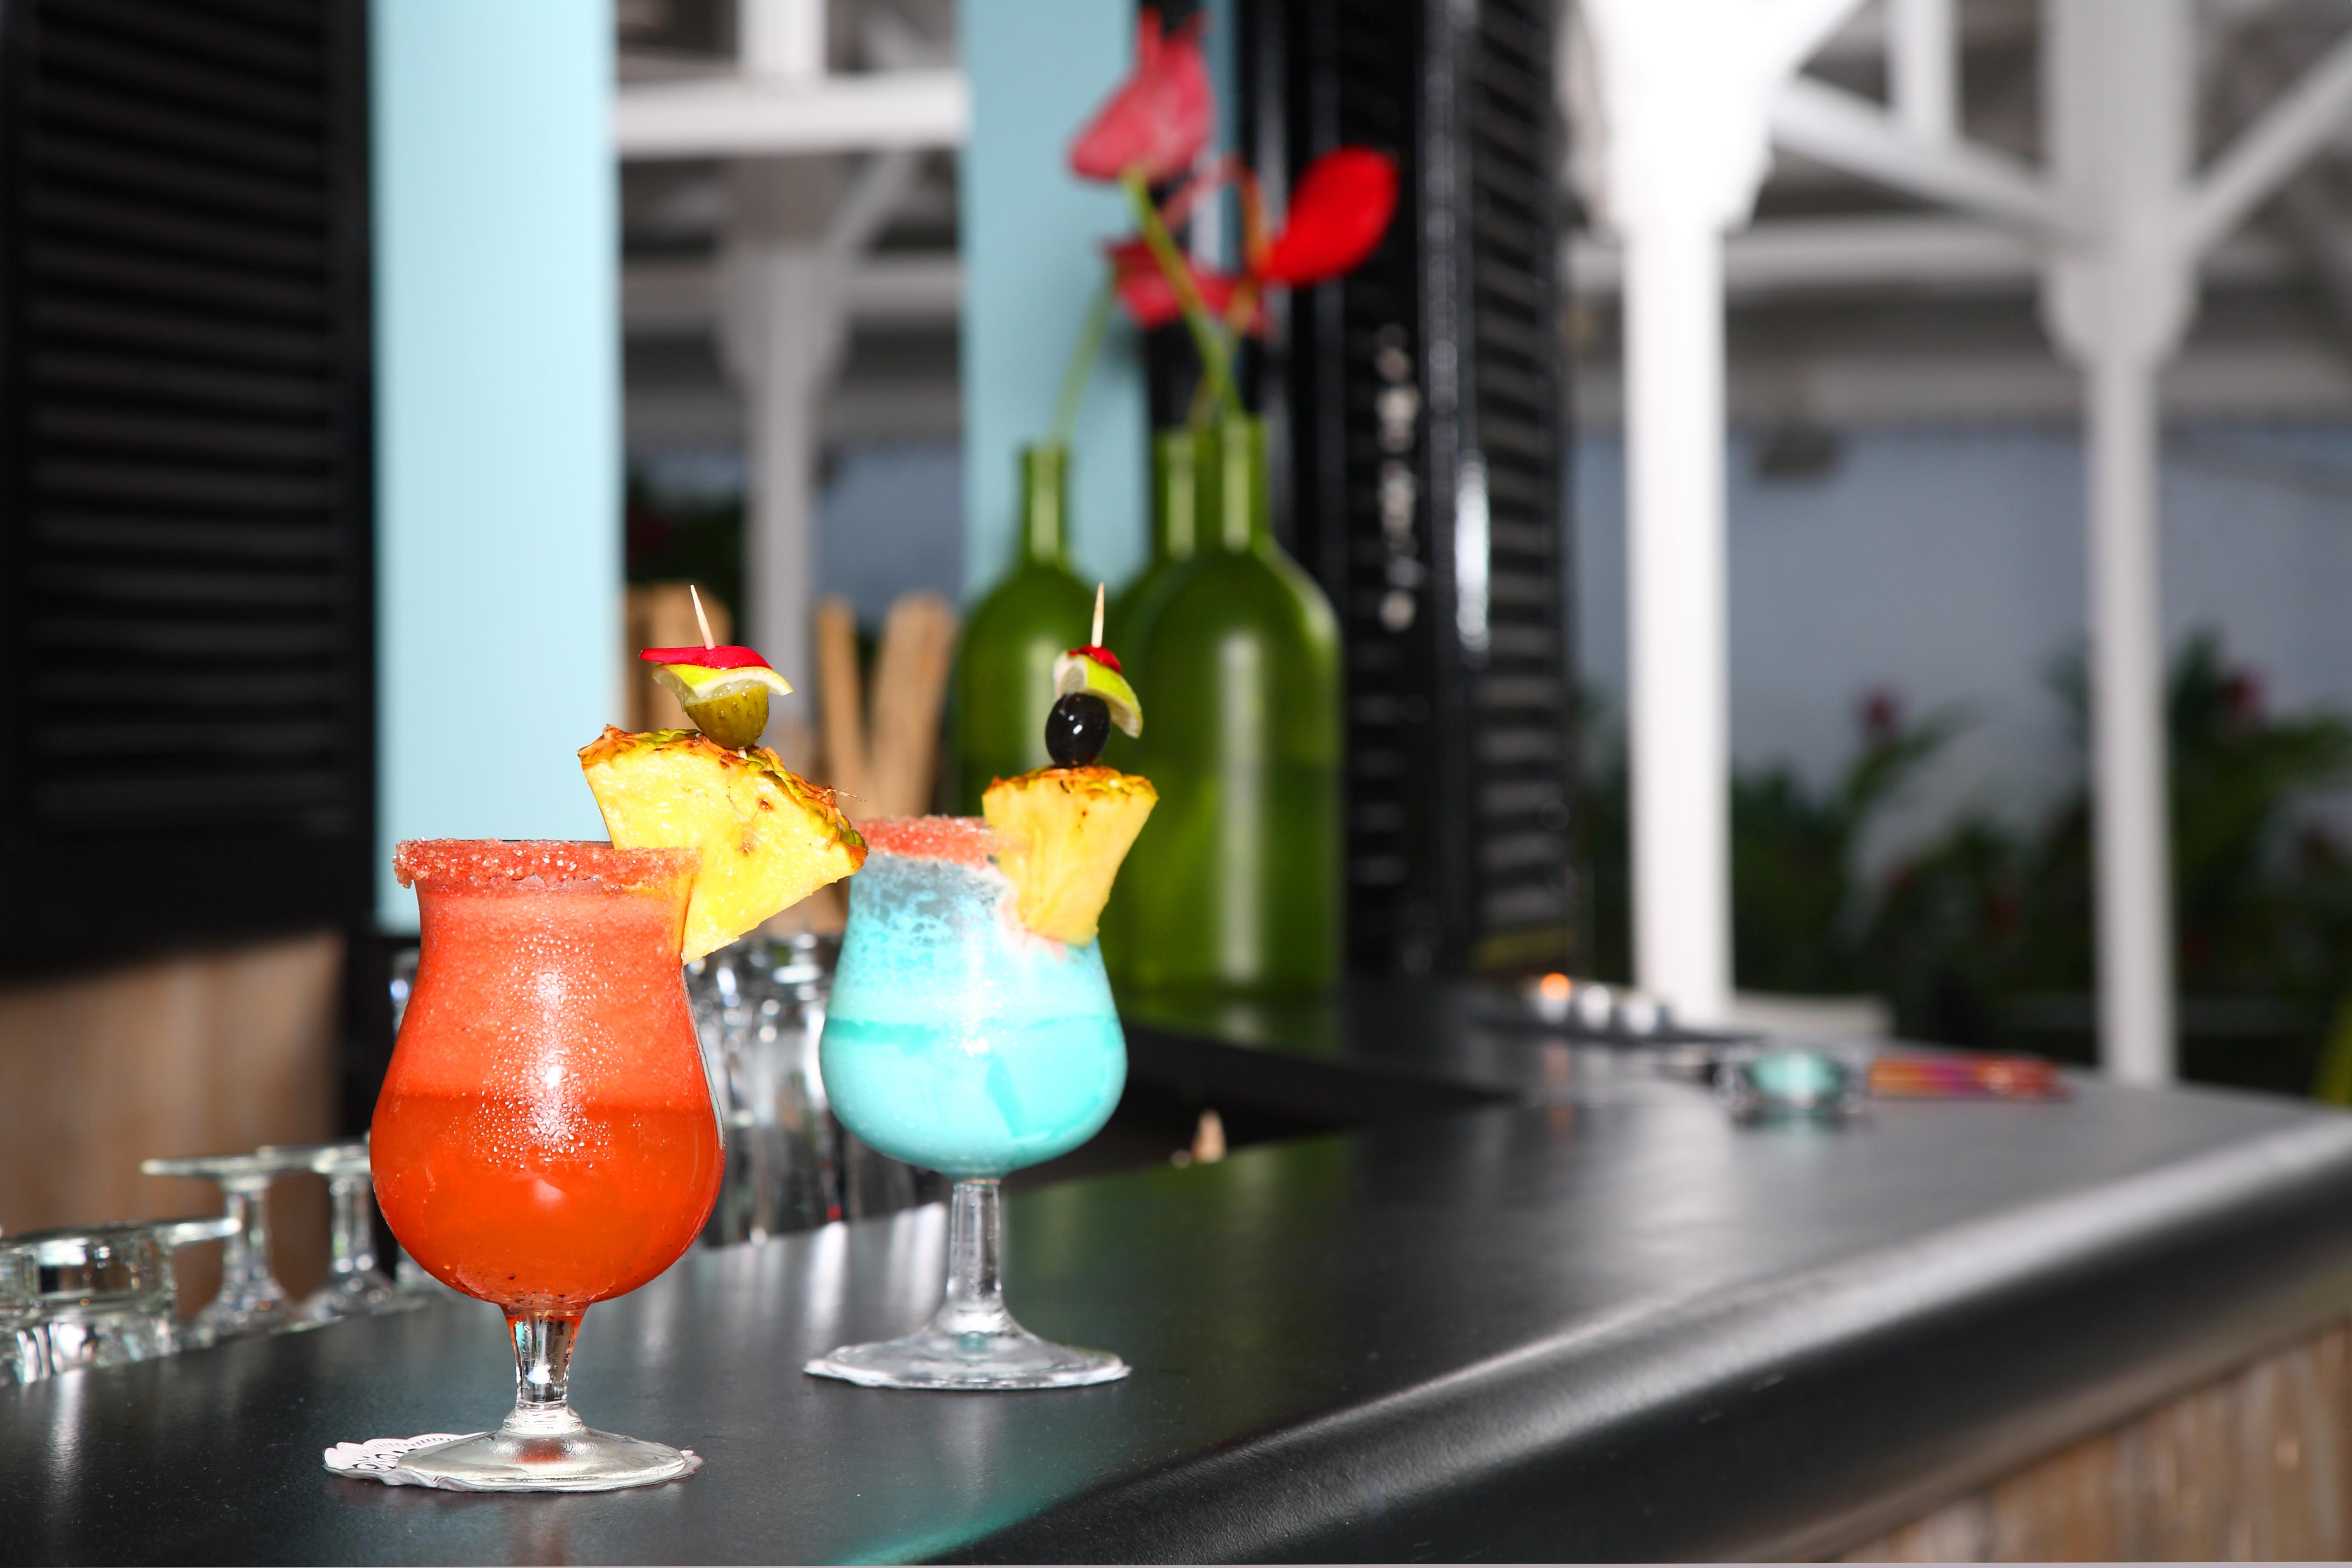 http://www.deshotelsetdesiles.com/hotel-vol-guadeloupe/photos/Bar02.jpg